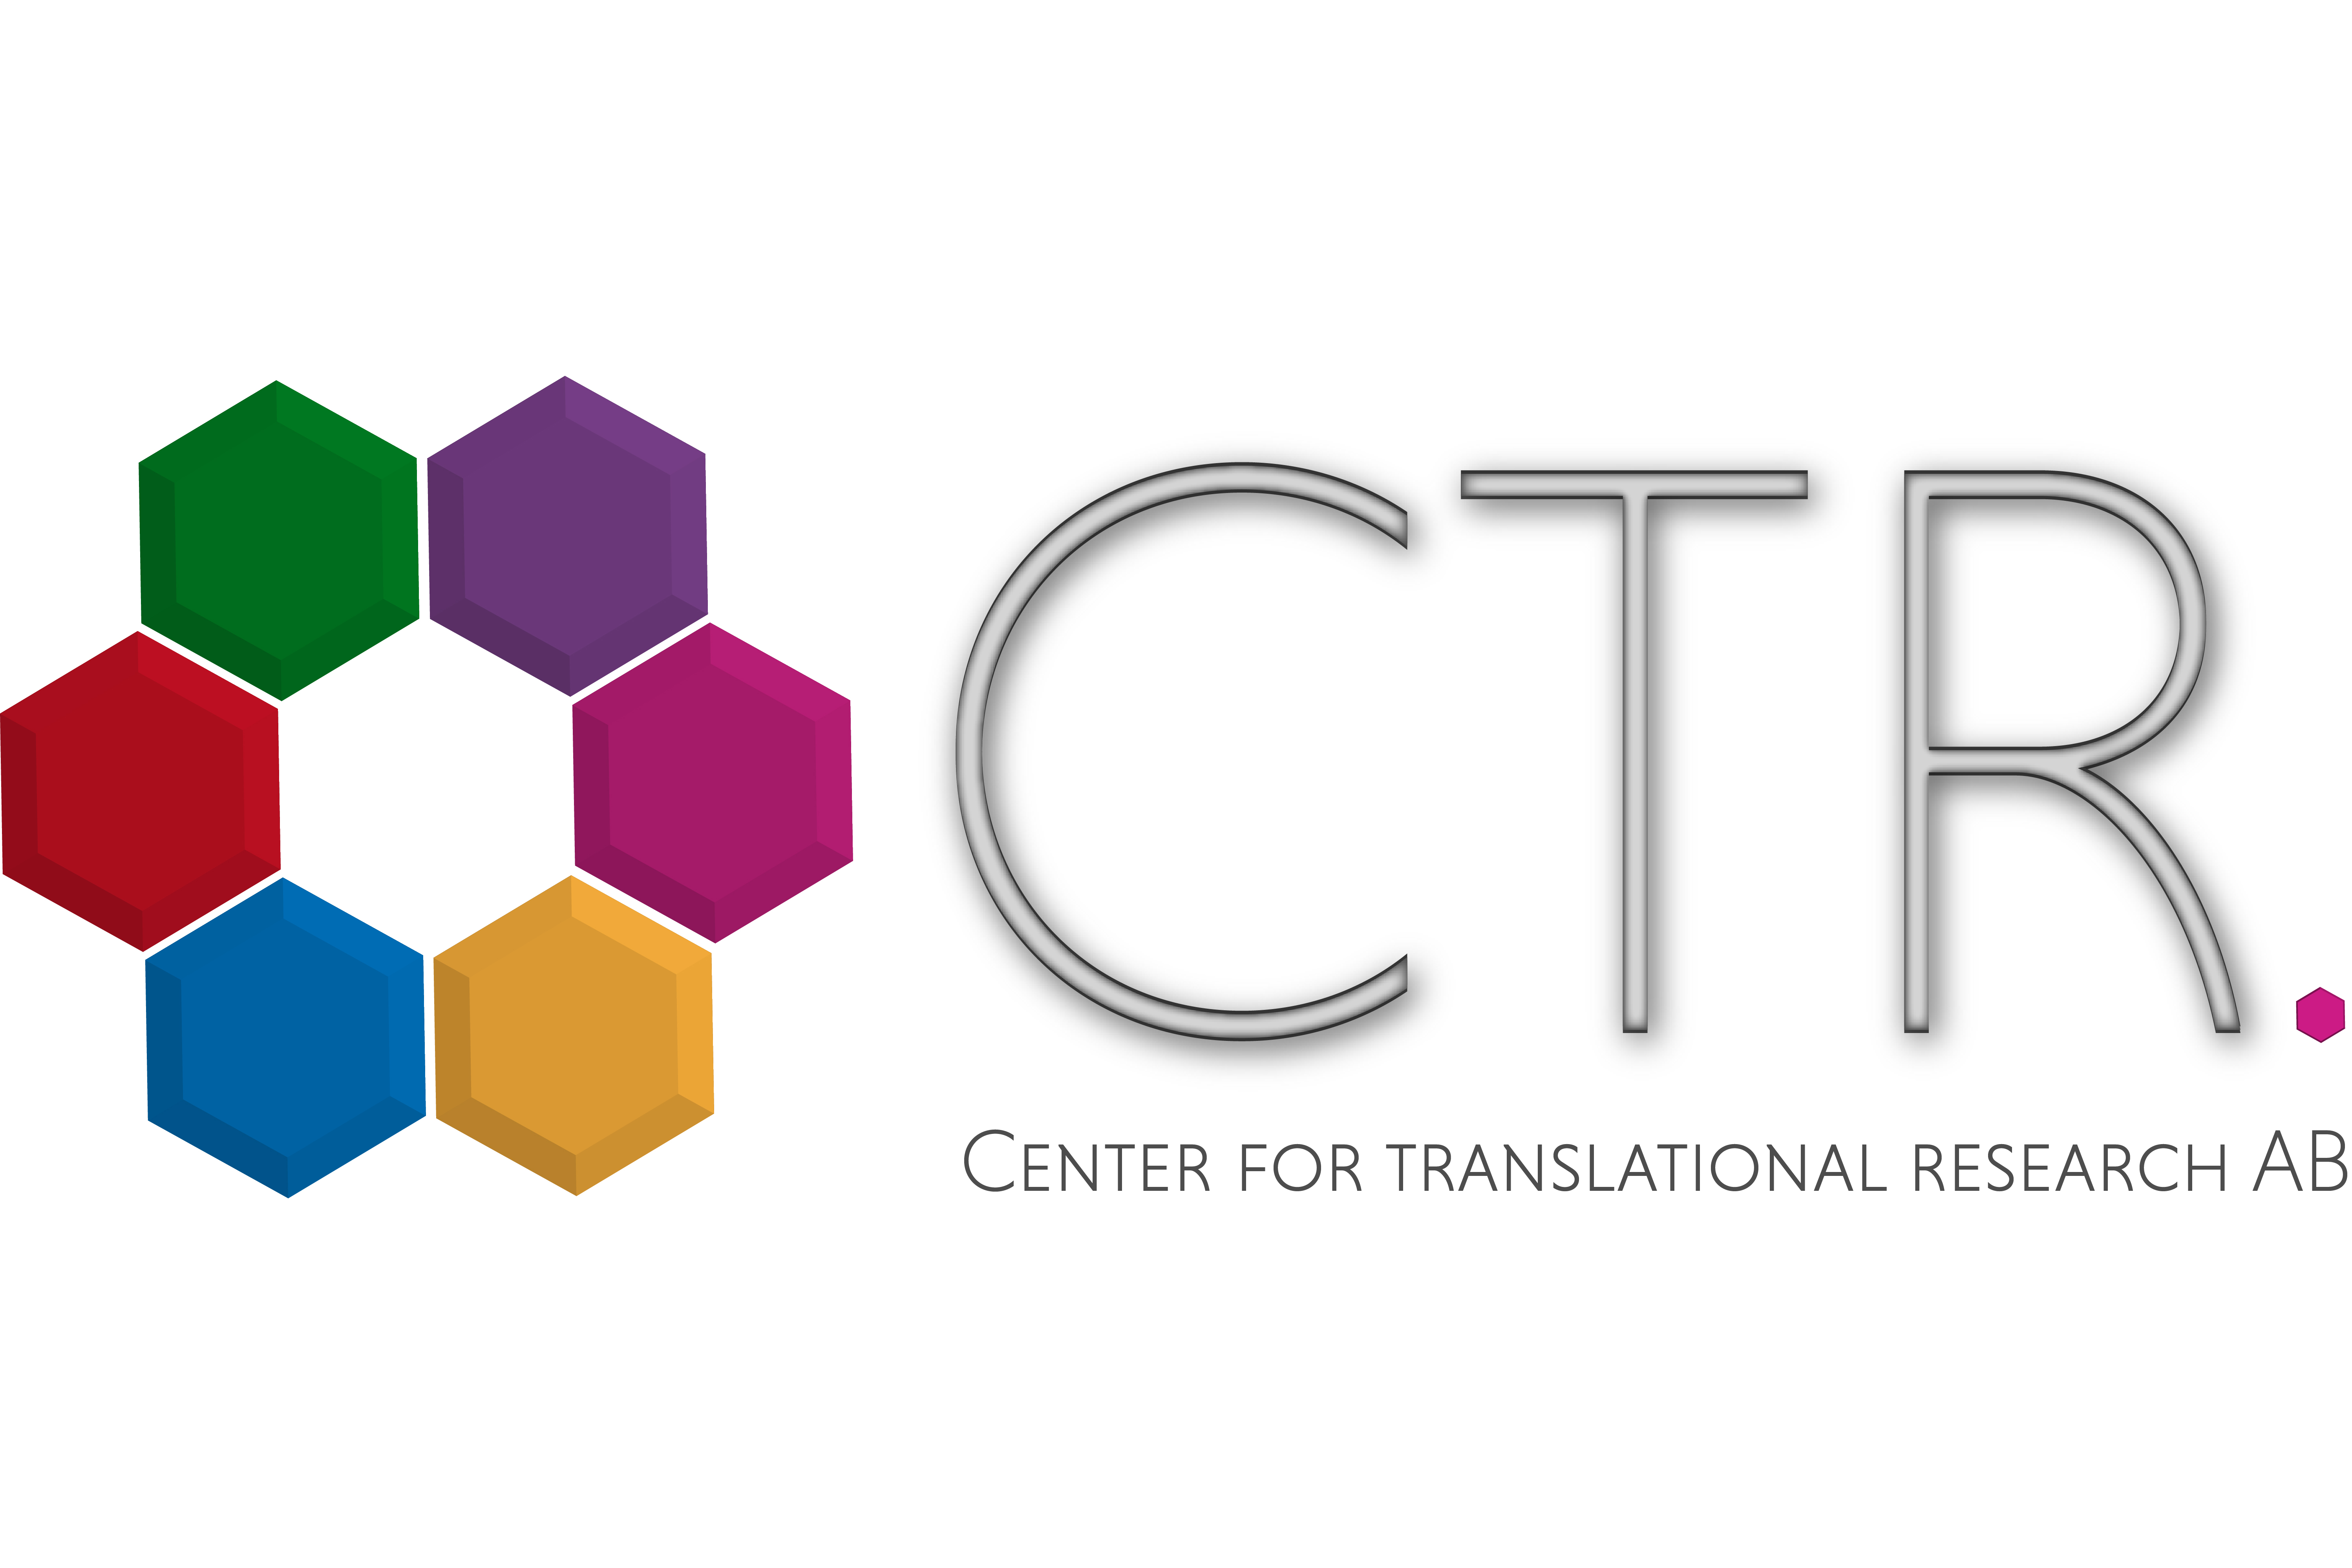 CTR acquires preclinical toxicology company